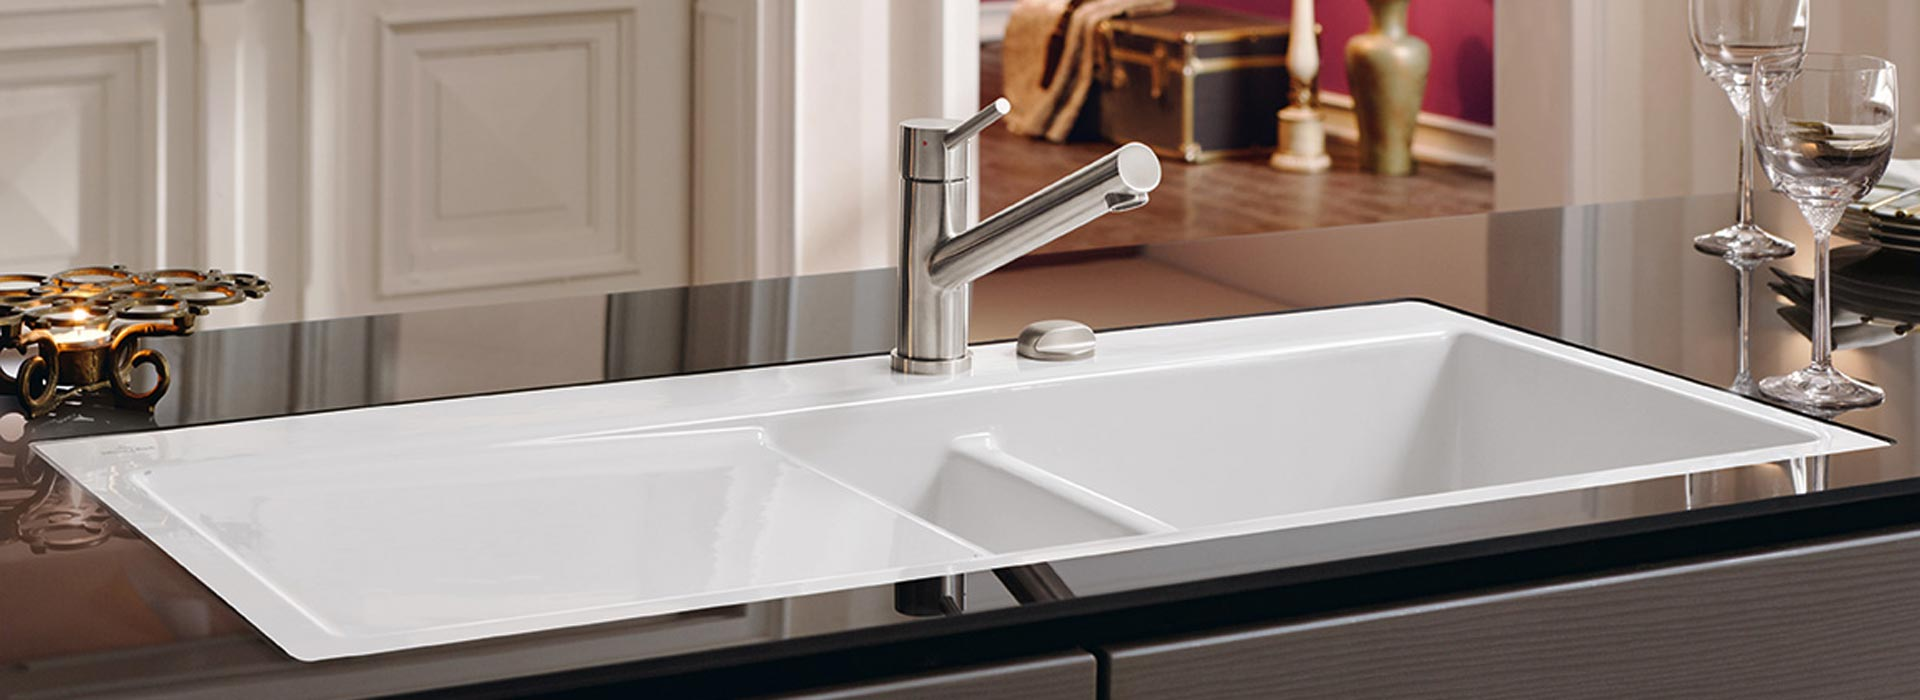 High quality ceramic sink from villeroy boch - Villeroy and bosh ...